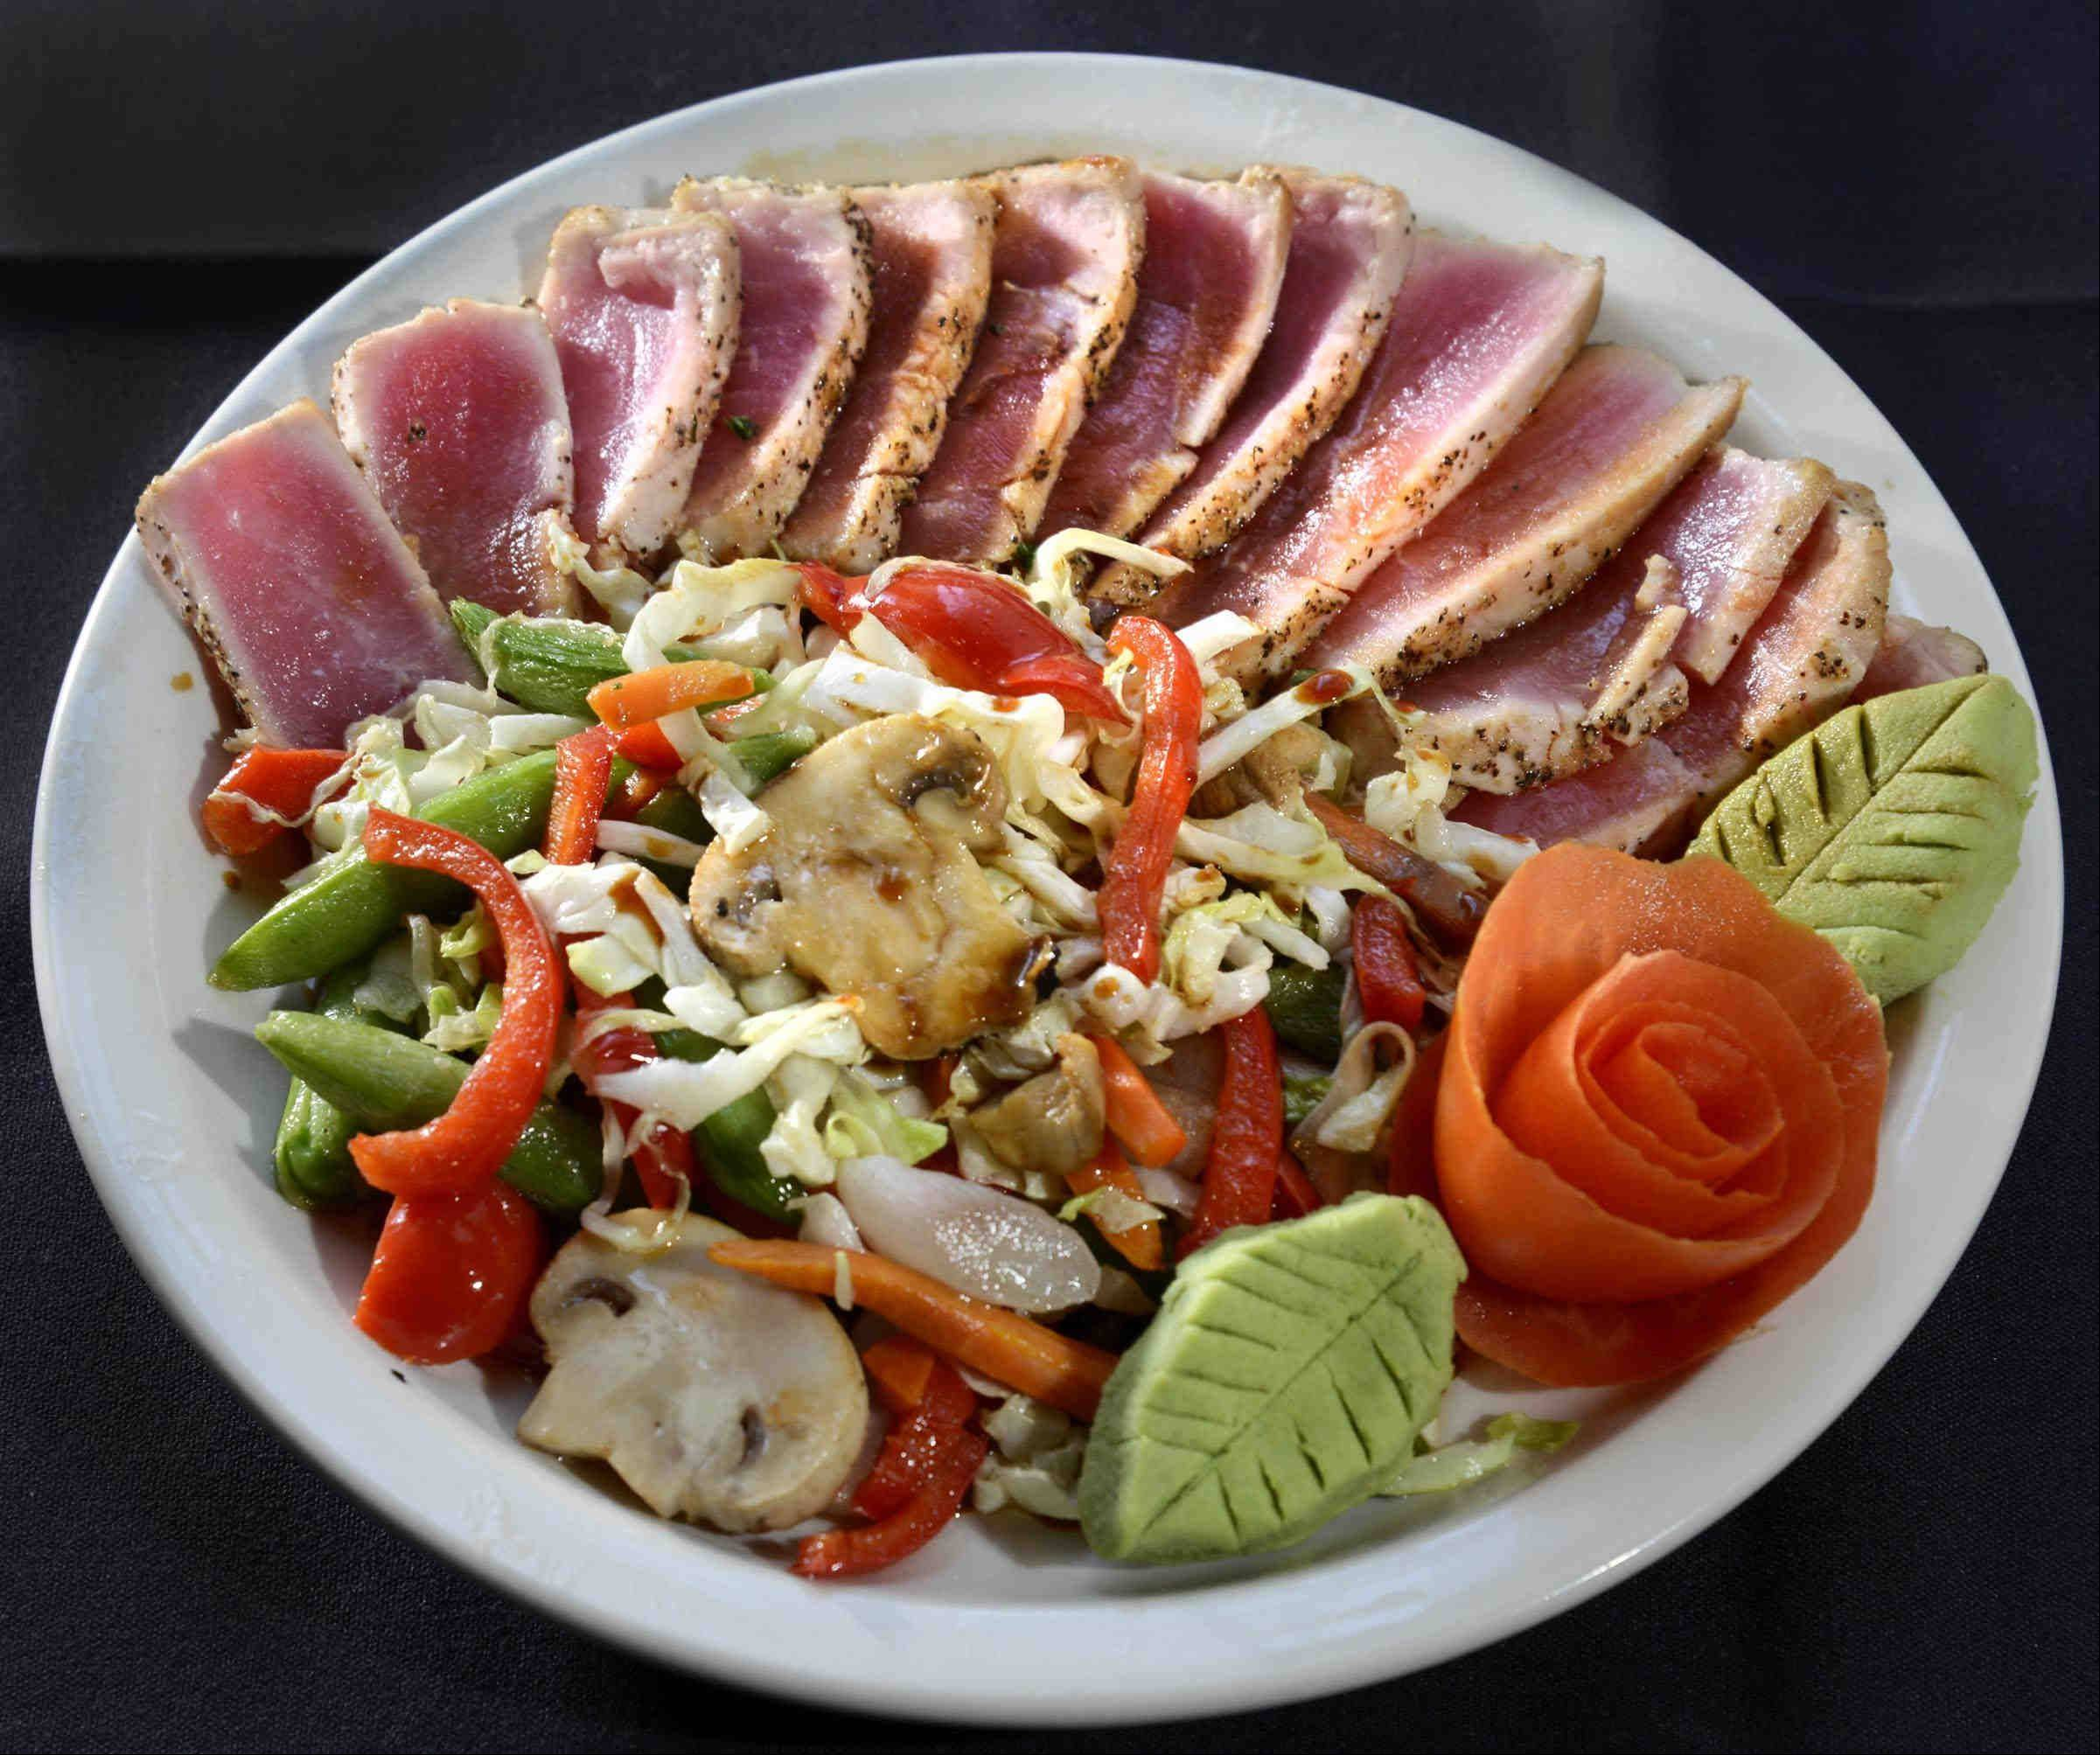 Ahi tuna with a rose cut tomato and wasabi sauce and vegetables is one of Pier 99 chef Edwon Montes' signature dishes.